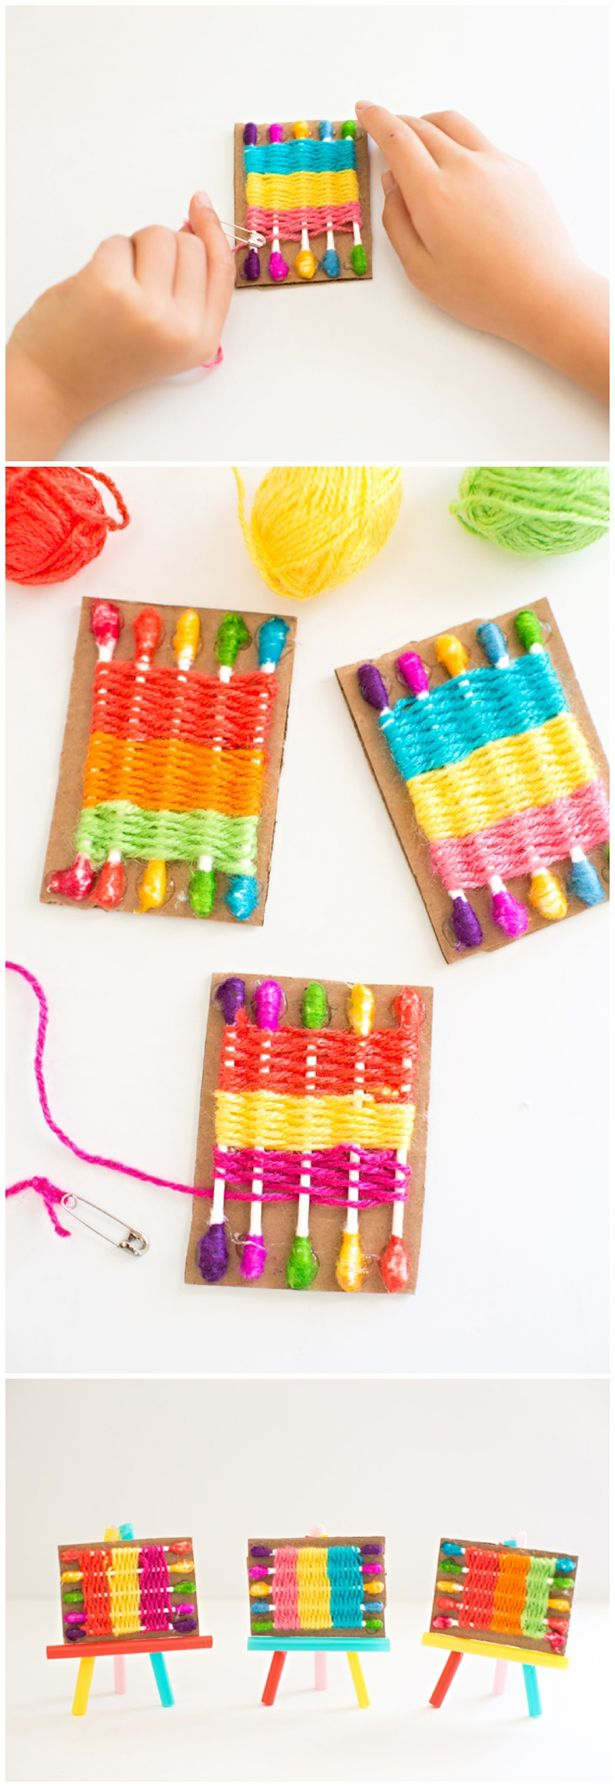 Make a Q-Tip Weaving Loom for Kids. Easy way to introduce weaving to kids and great for practicing fine motor skills!